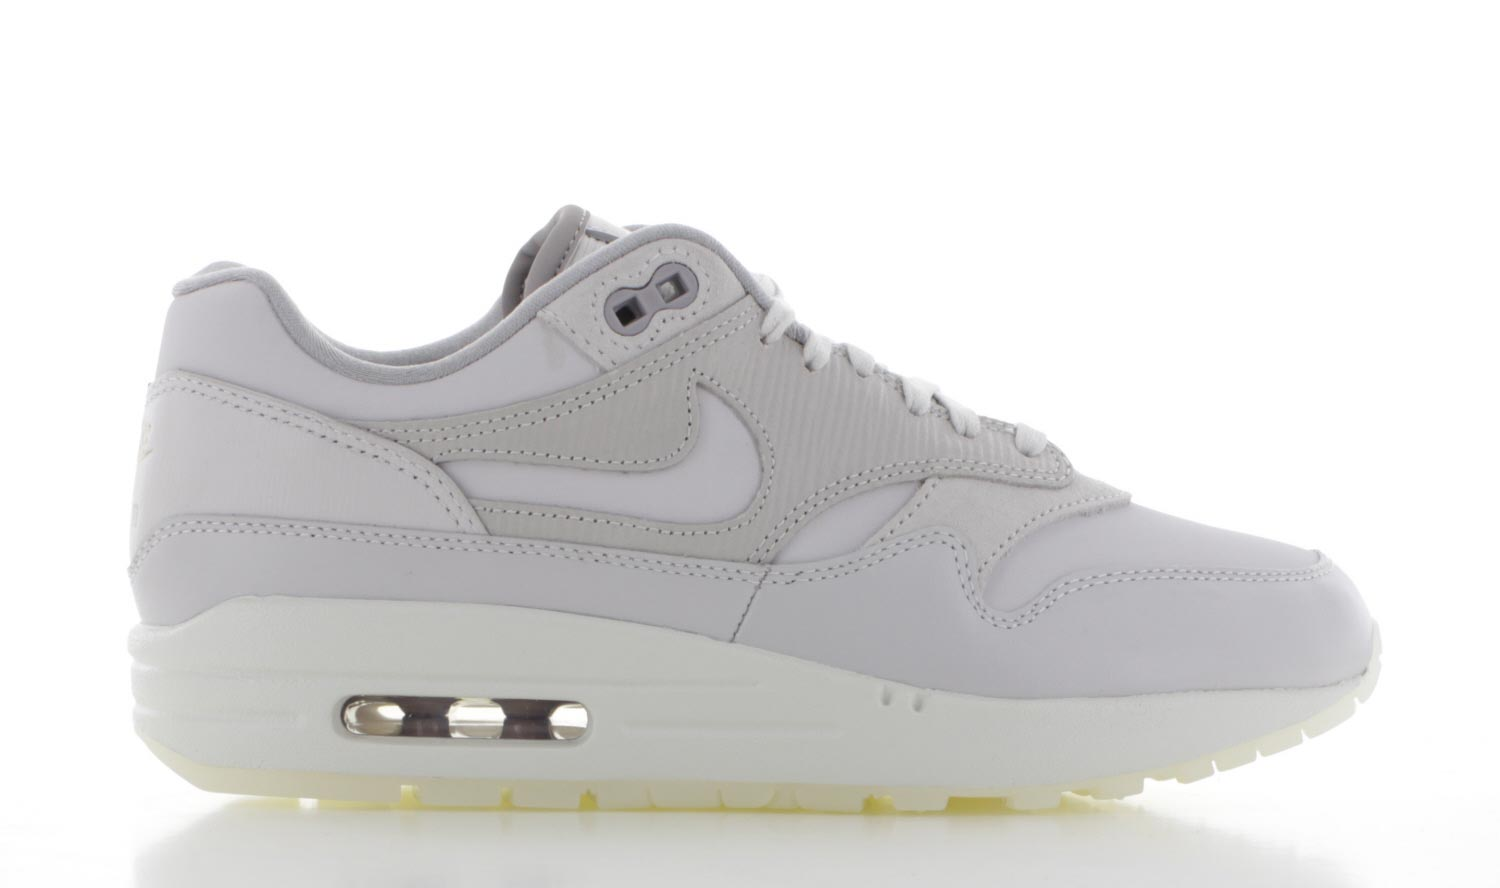 nike air max dames grijs wit